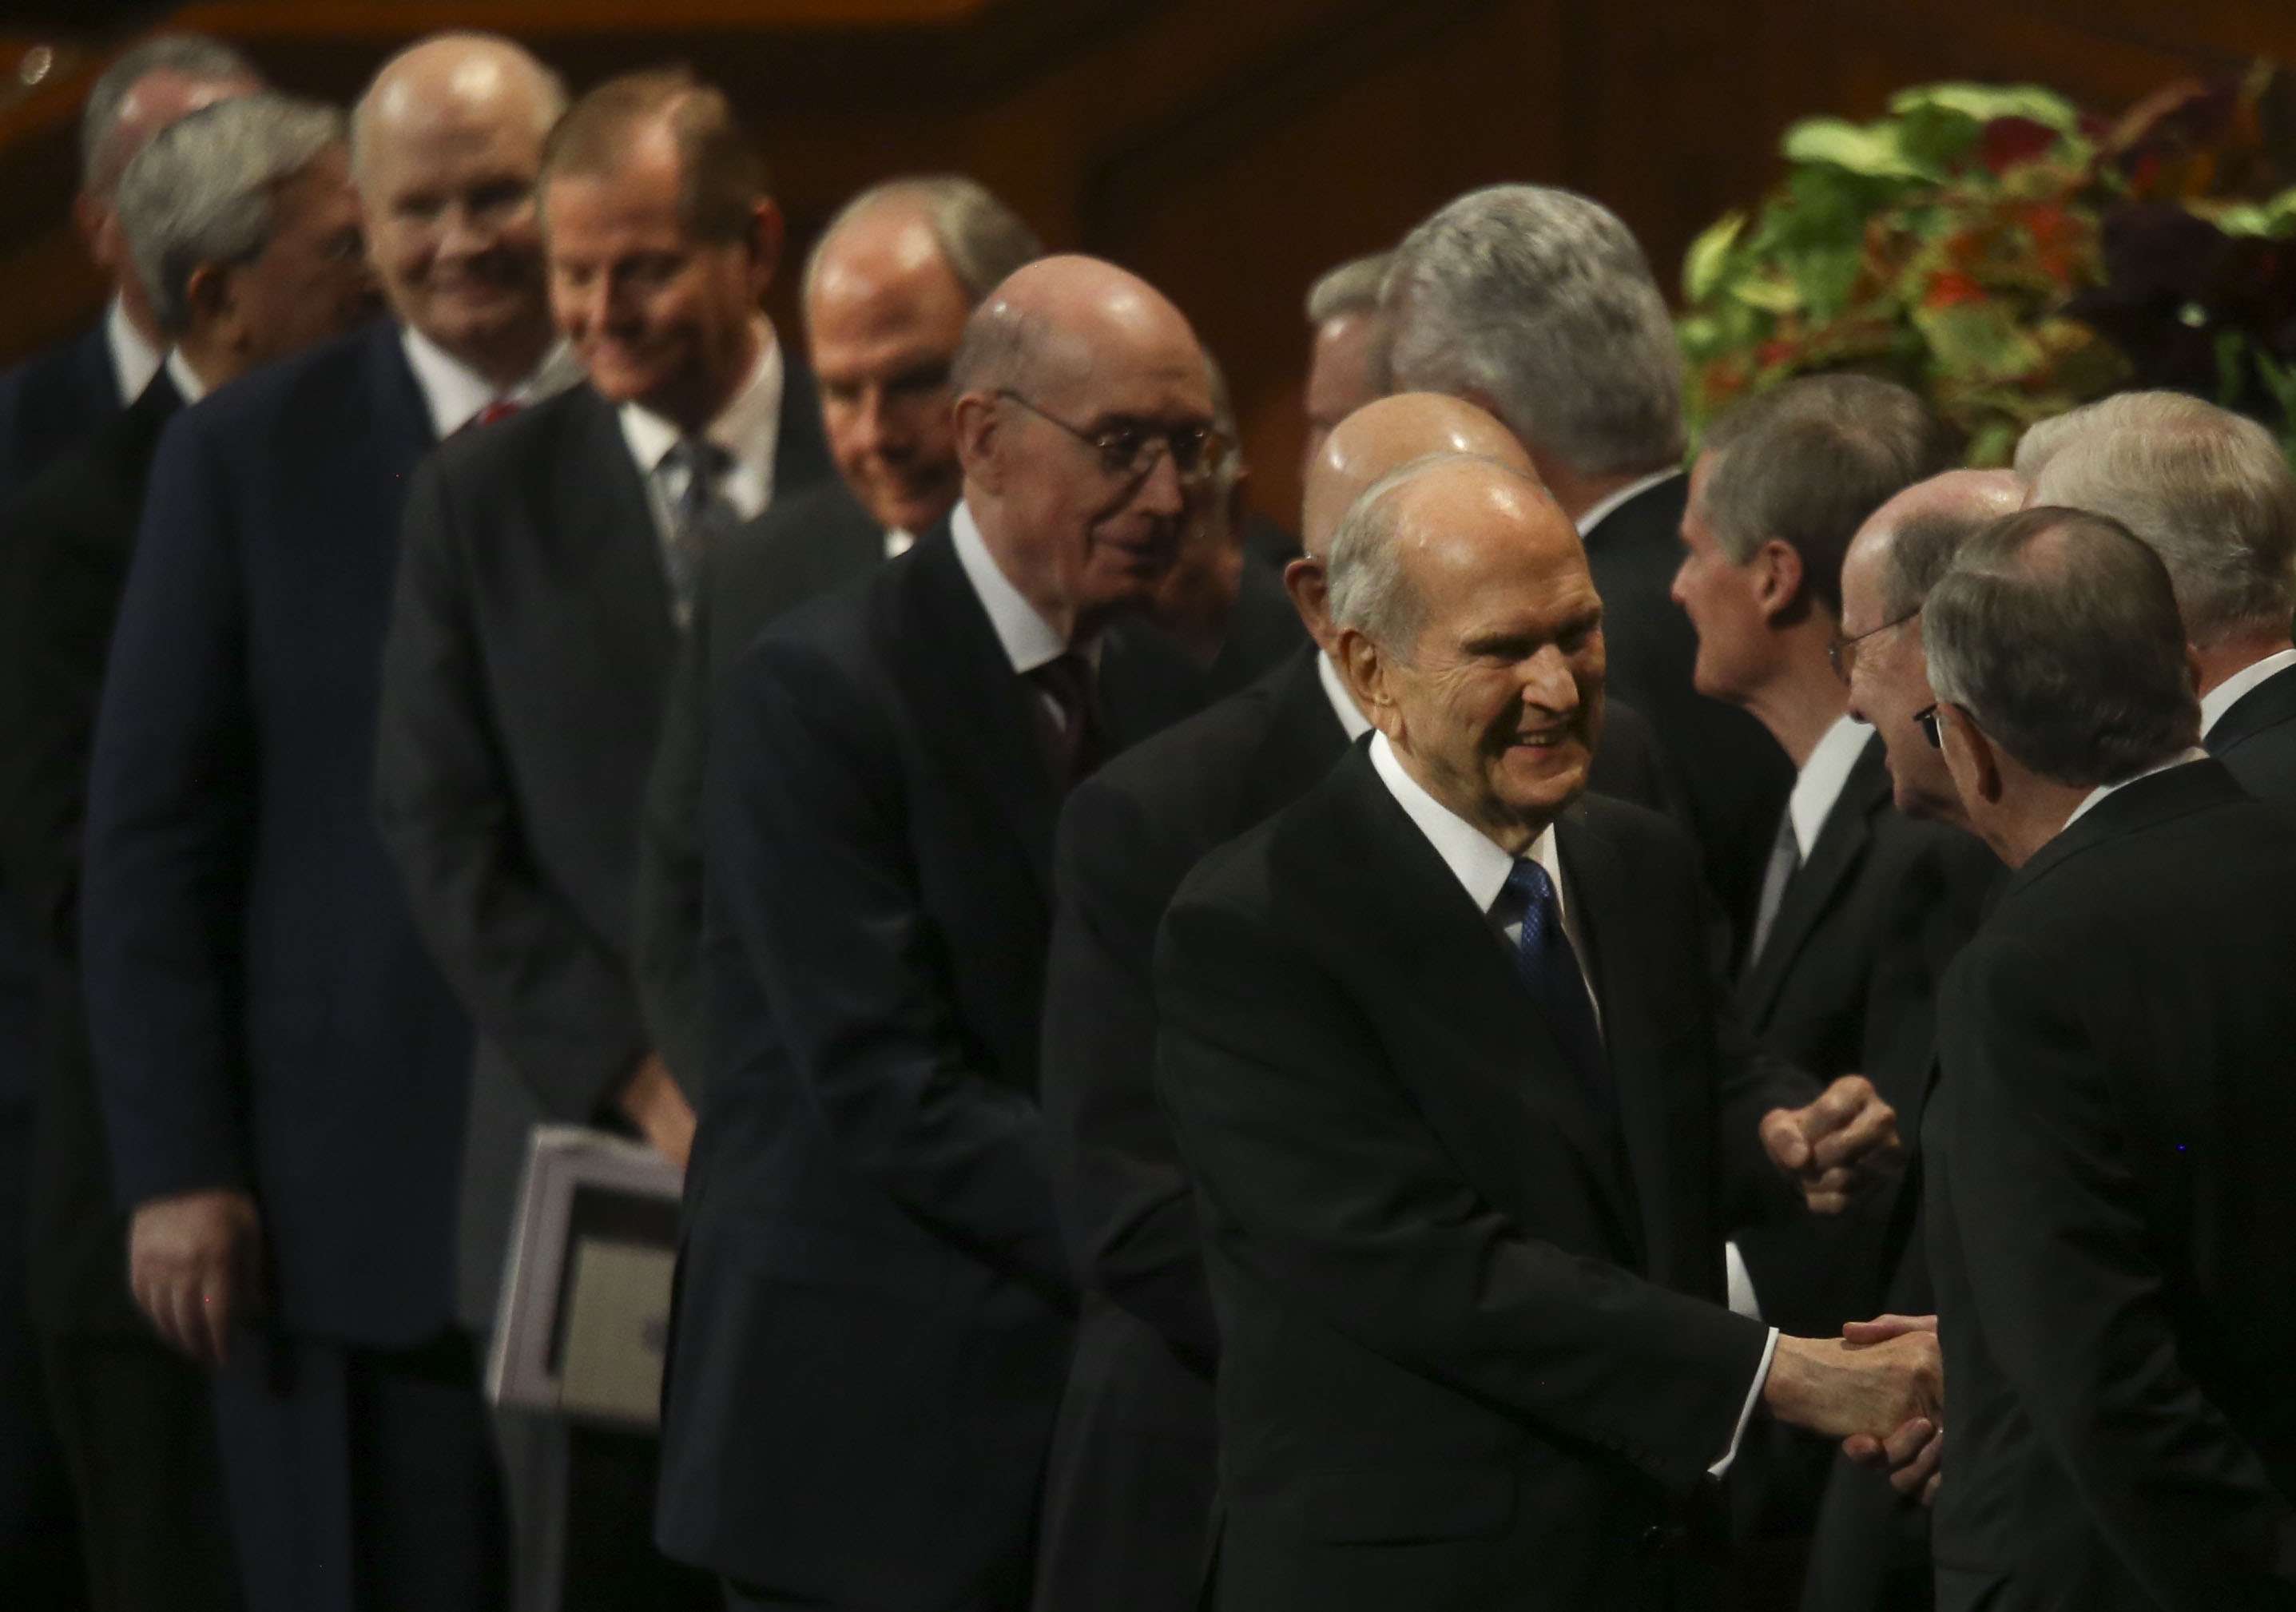 President Russell M. Nelson shakes hands with general authorities after the Sunday morning session of the 189th Semiannual General Conference of The Church of Jesus Christ of Latter-day Saints at the Conference Center in Salt Lake City on Sunday, Oct. 6, 2019.